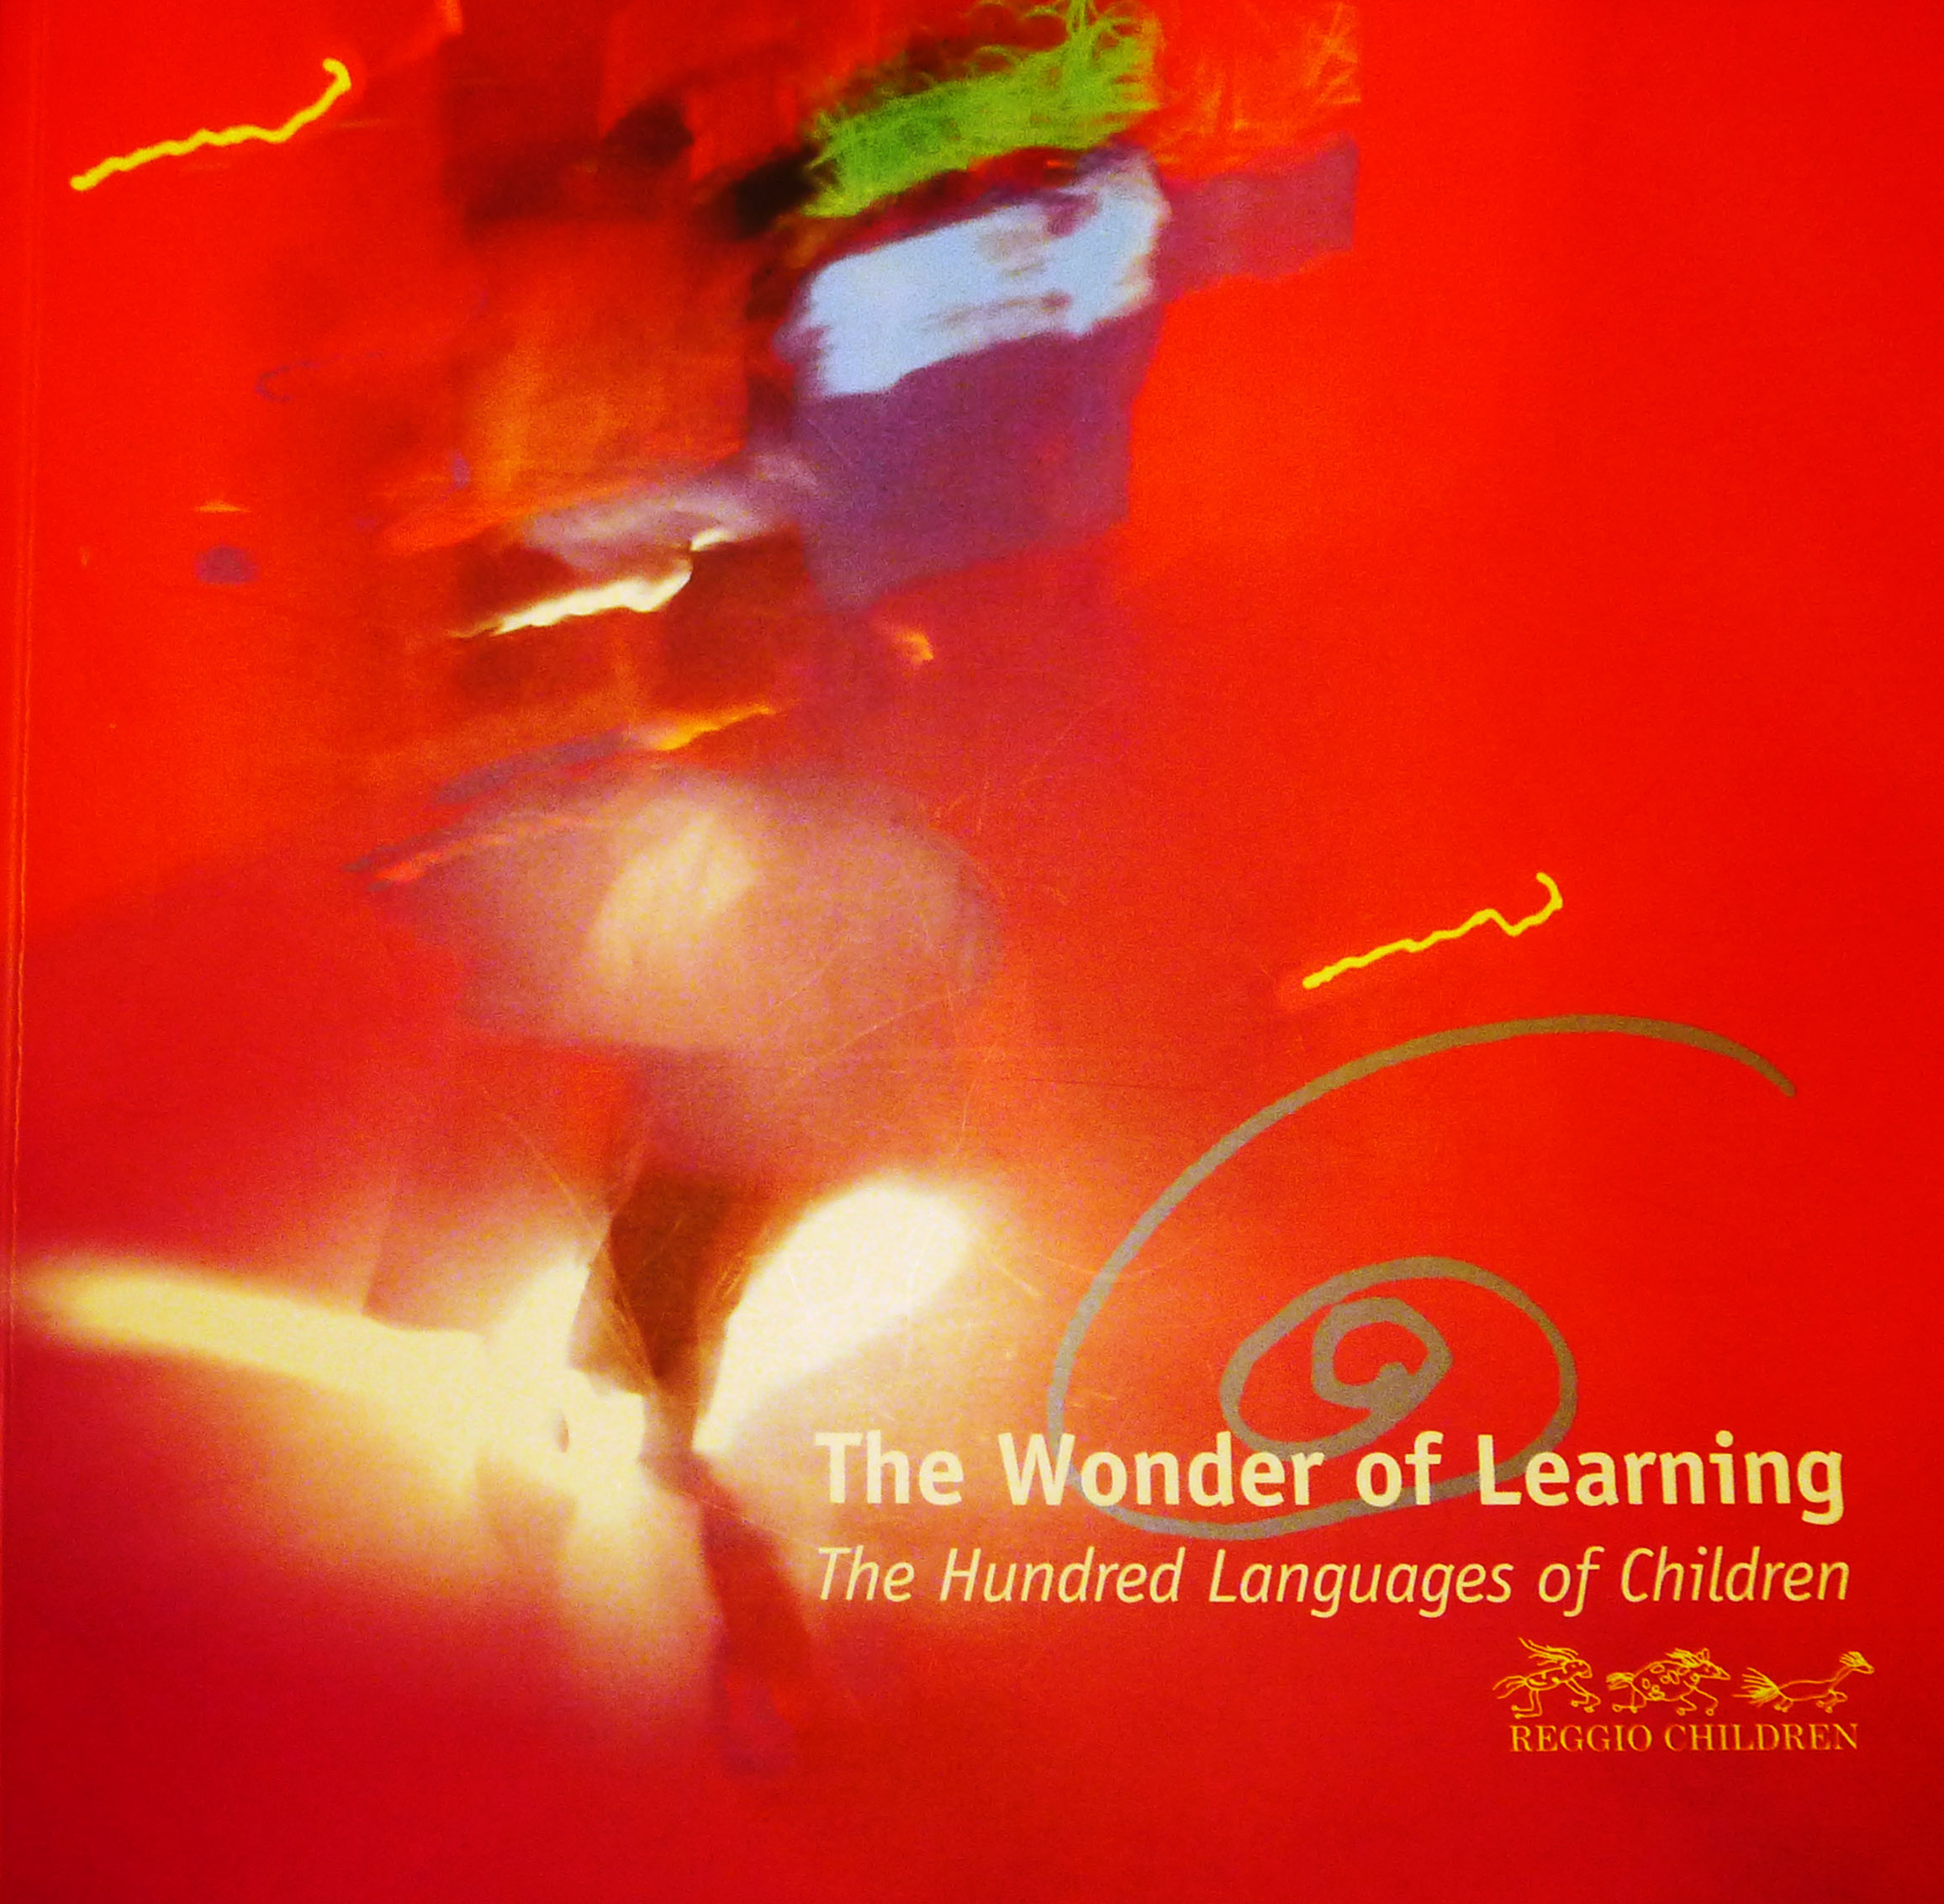 The cover of the excellent  The Wonder of Learning  printed Exhibition Catalog. The ongoing documentation of images and children's words are deceptively simple. There is so much beauty and poetry, recorded in Italy and displayed in the exhibition and its companion book, and we are so excited to see it all in person, this January through May in our own hometown of Brooklyn NY.